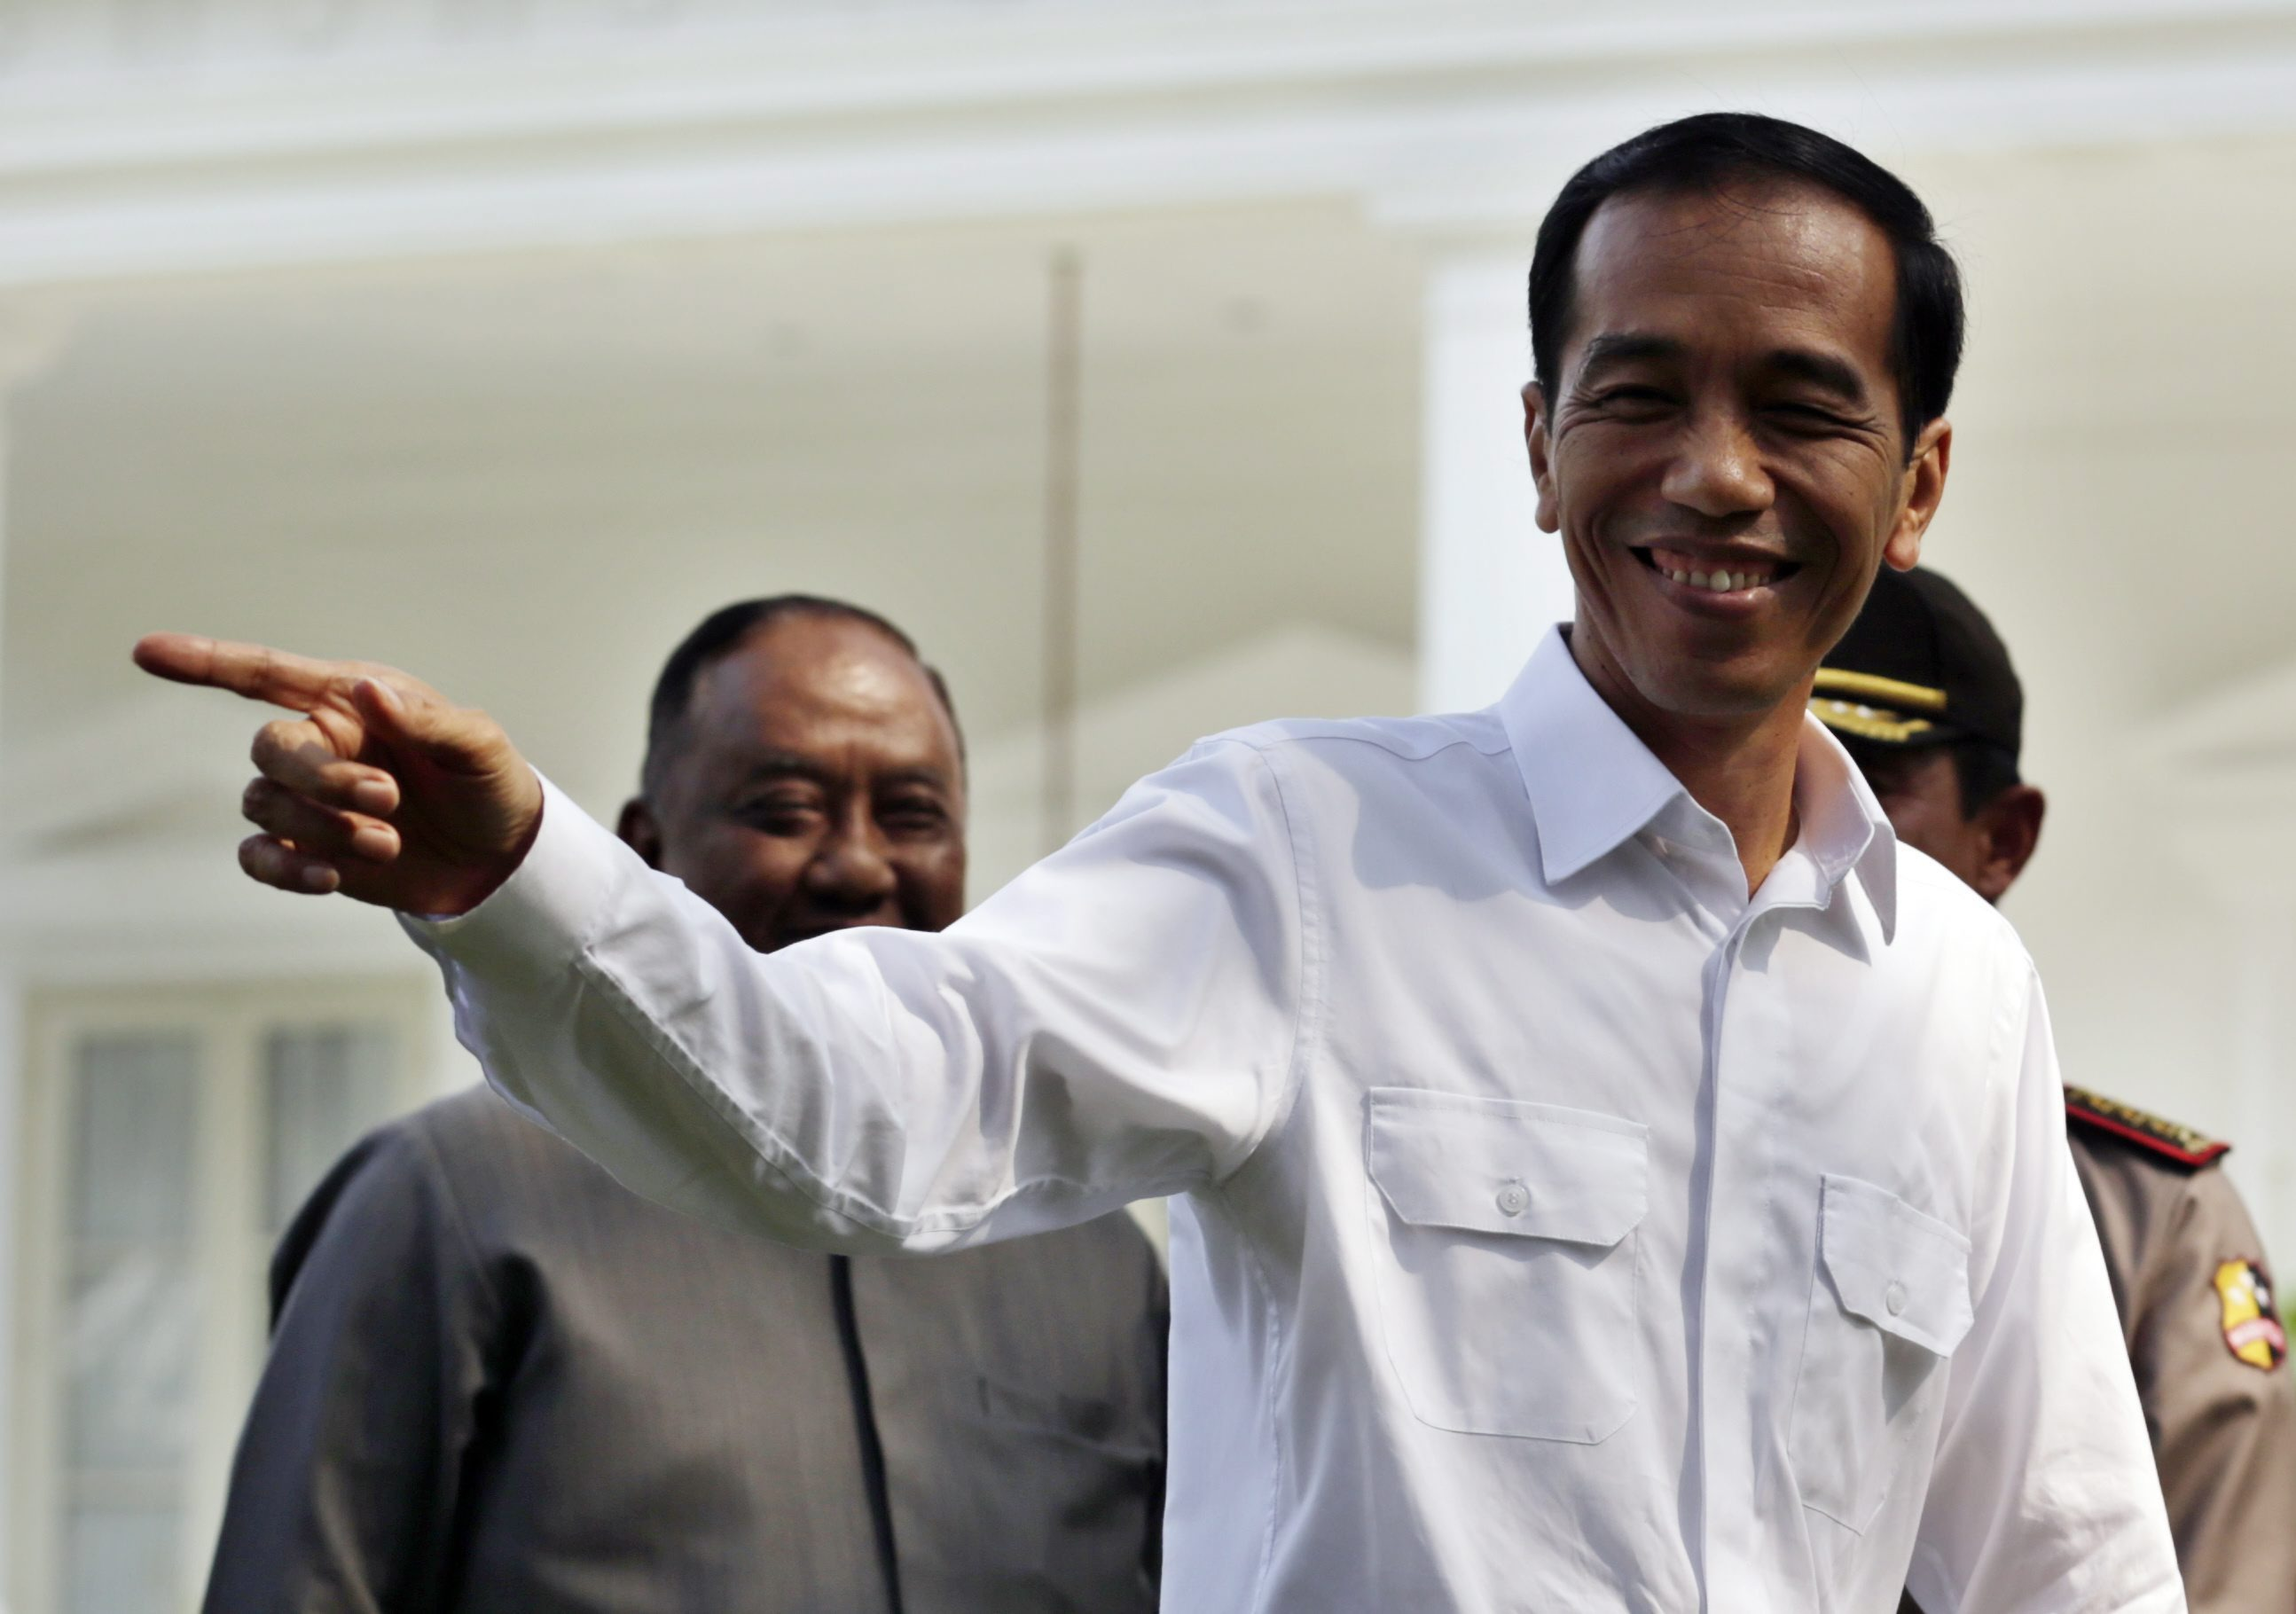 Indonesia's new cabinet built on political transactions